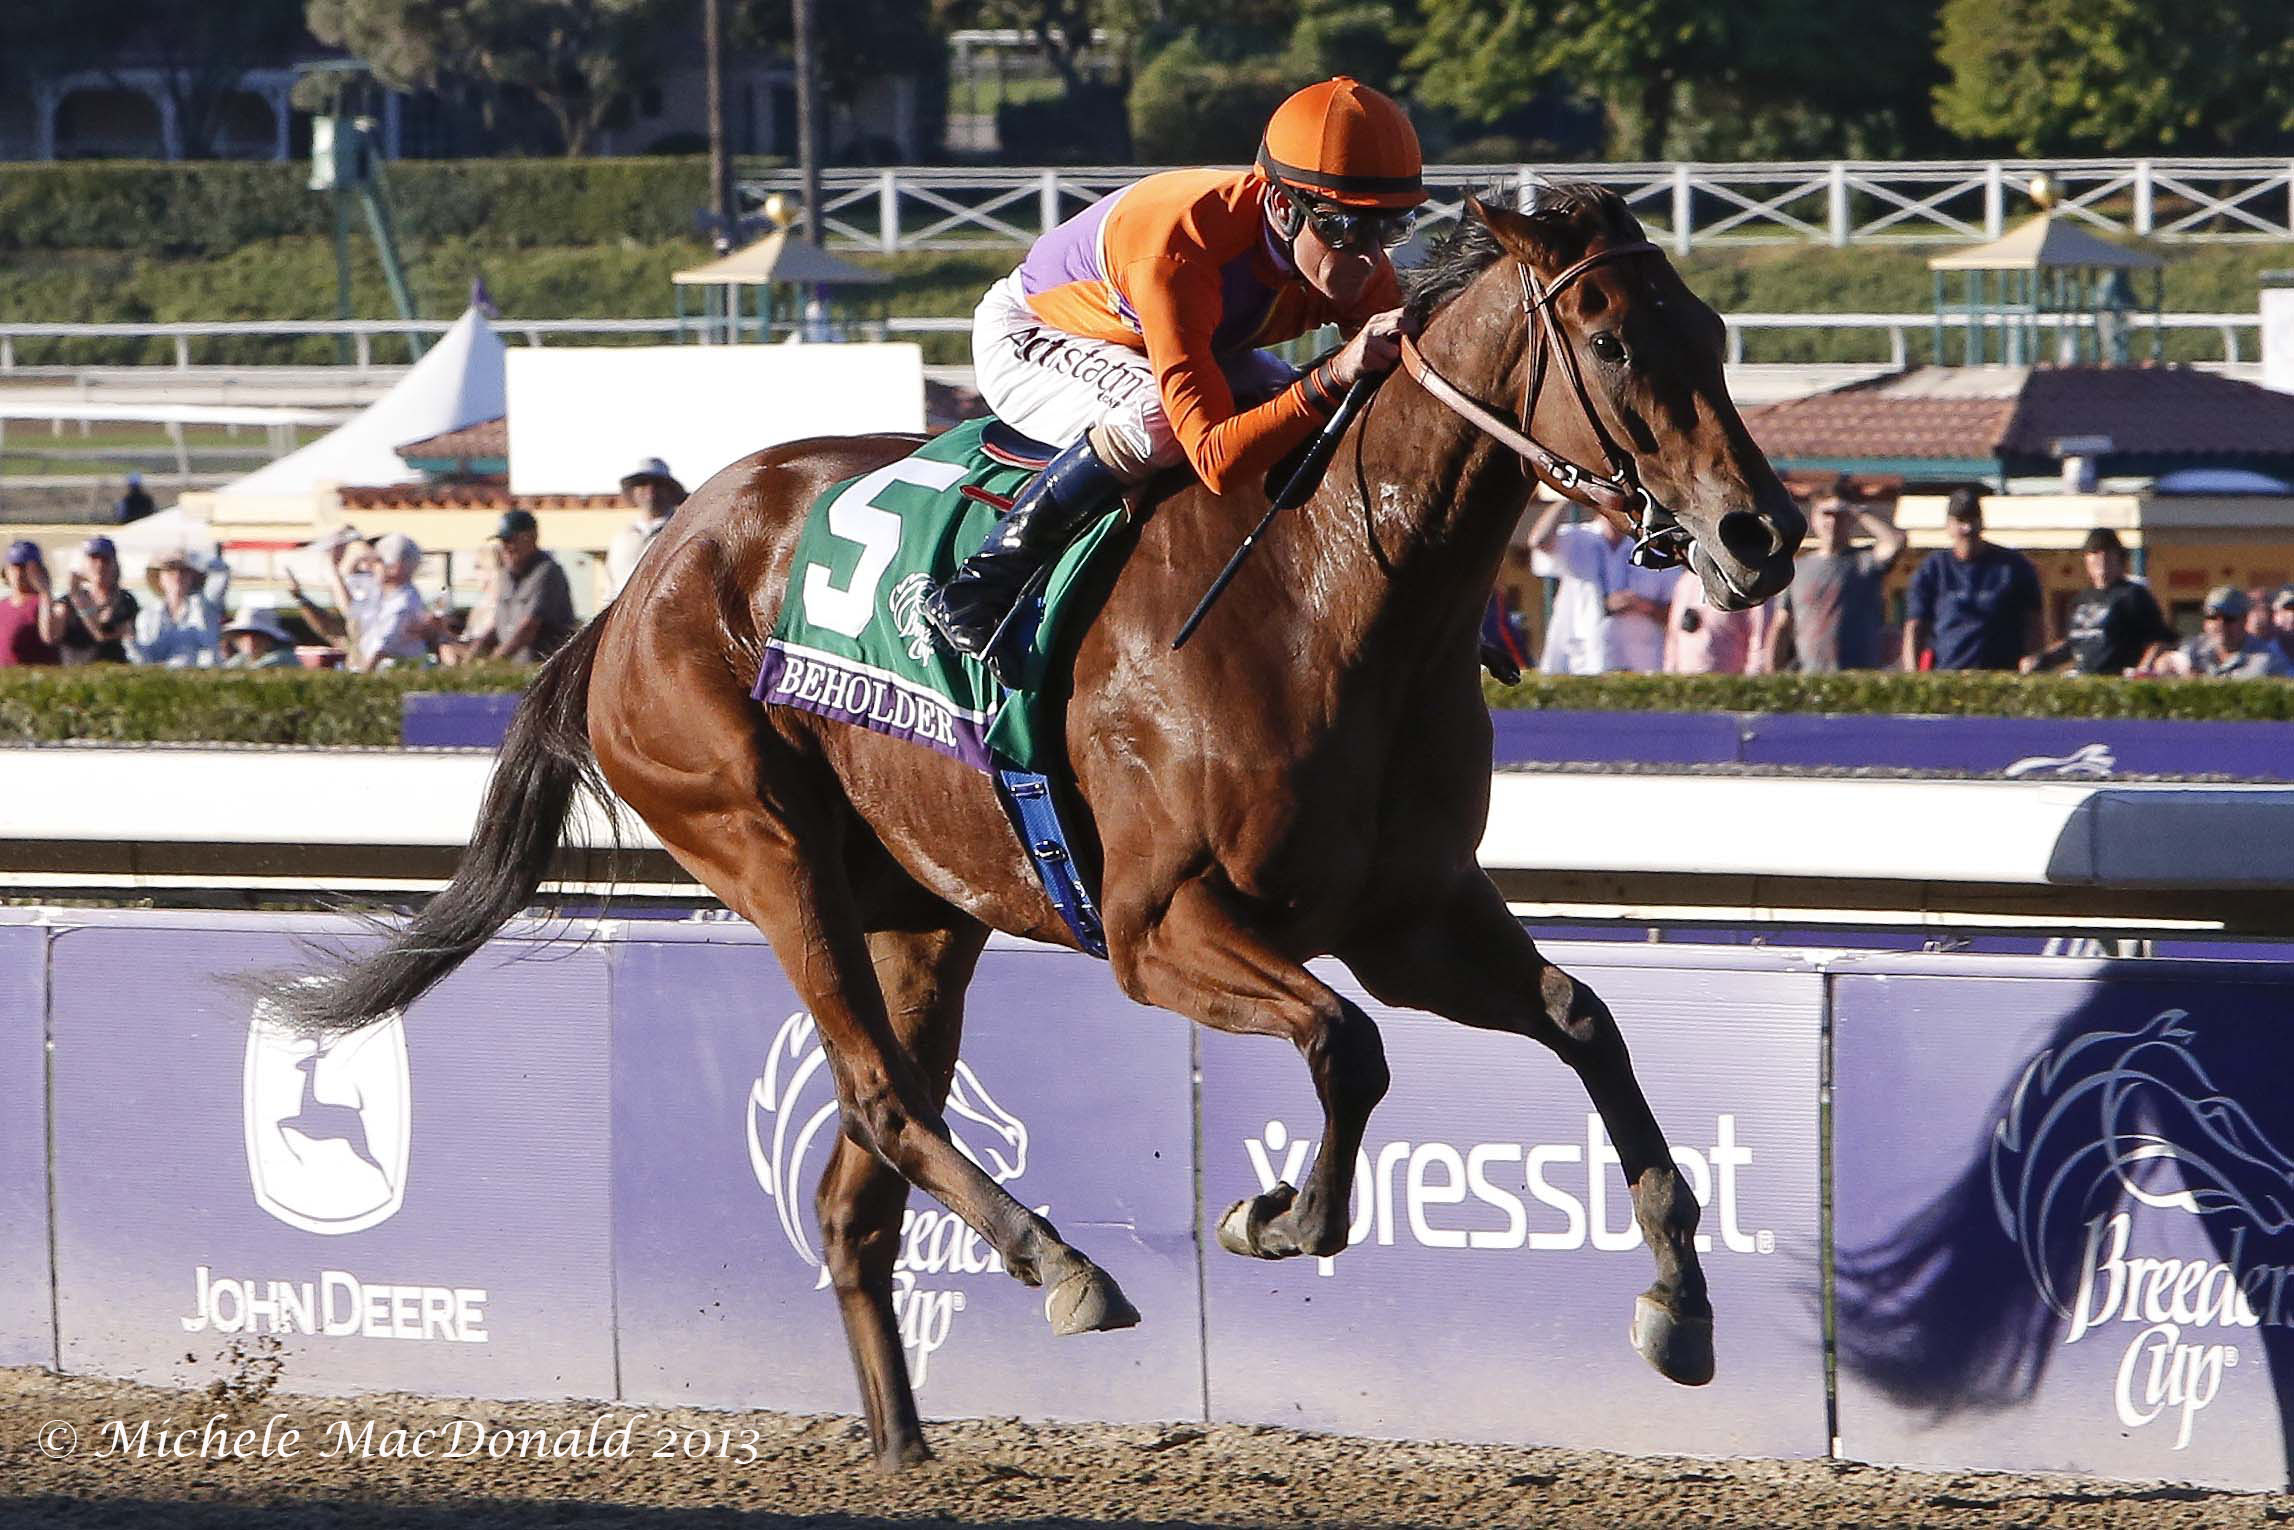 Beholder winning the Breeders' Cup Distaff  at Santa Anita in 2013. Photo: Michele MacDonald